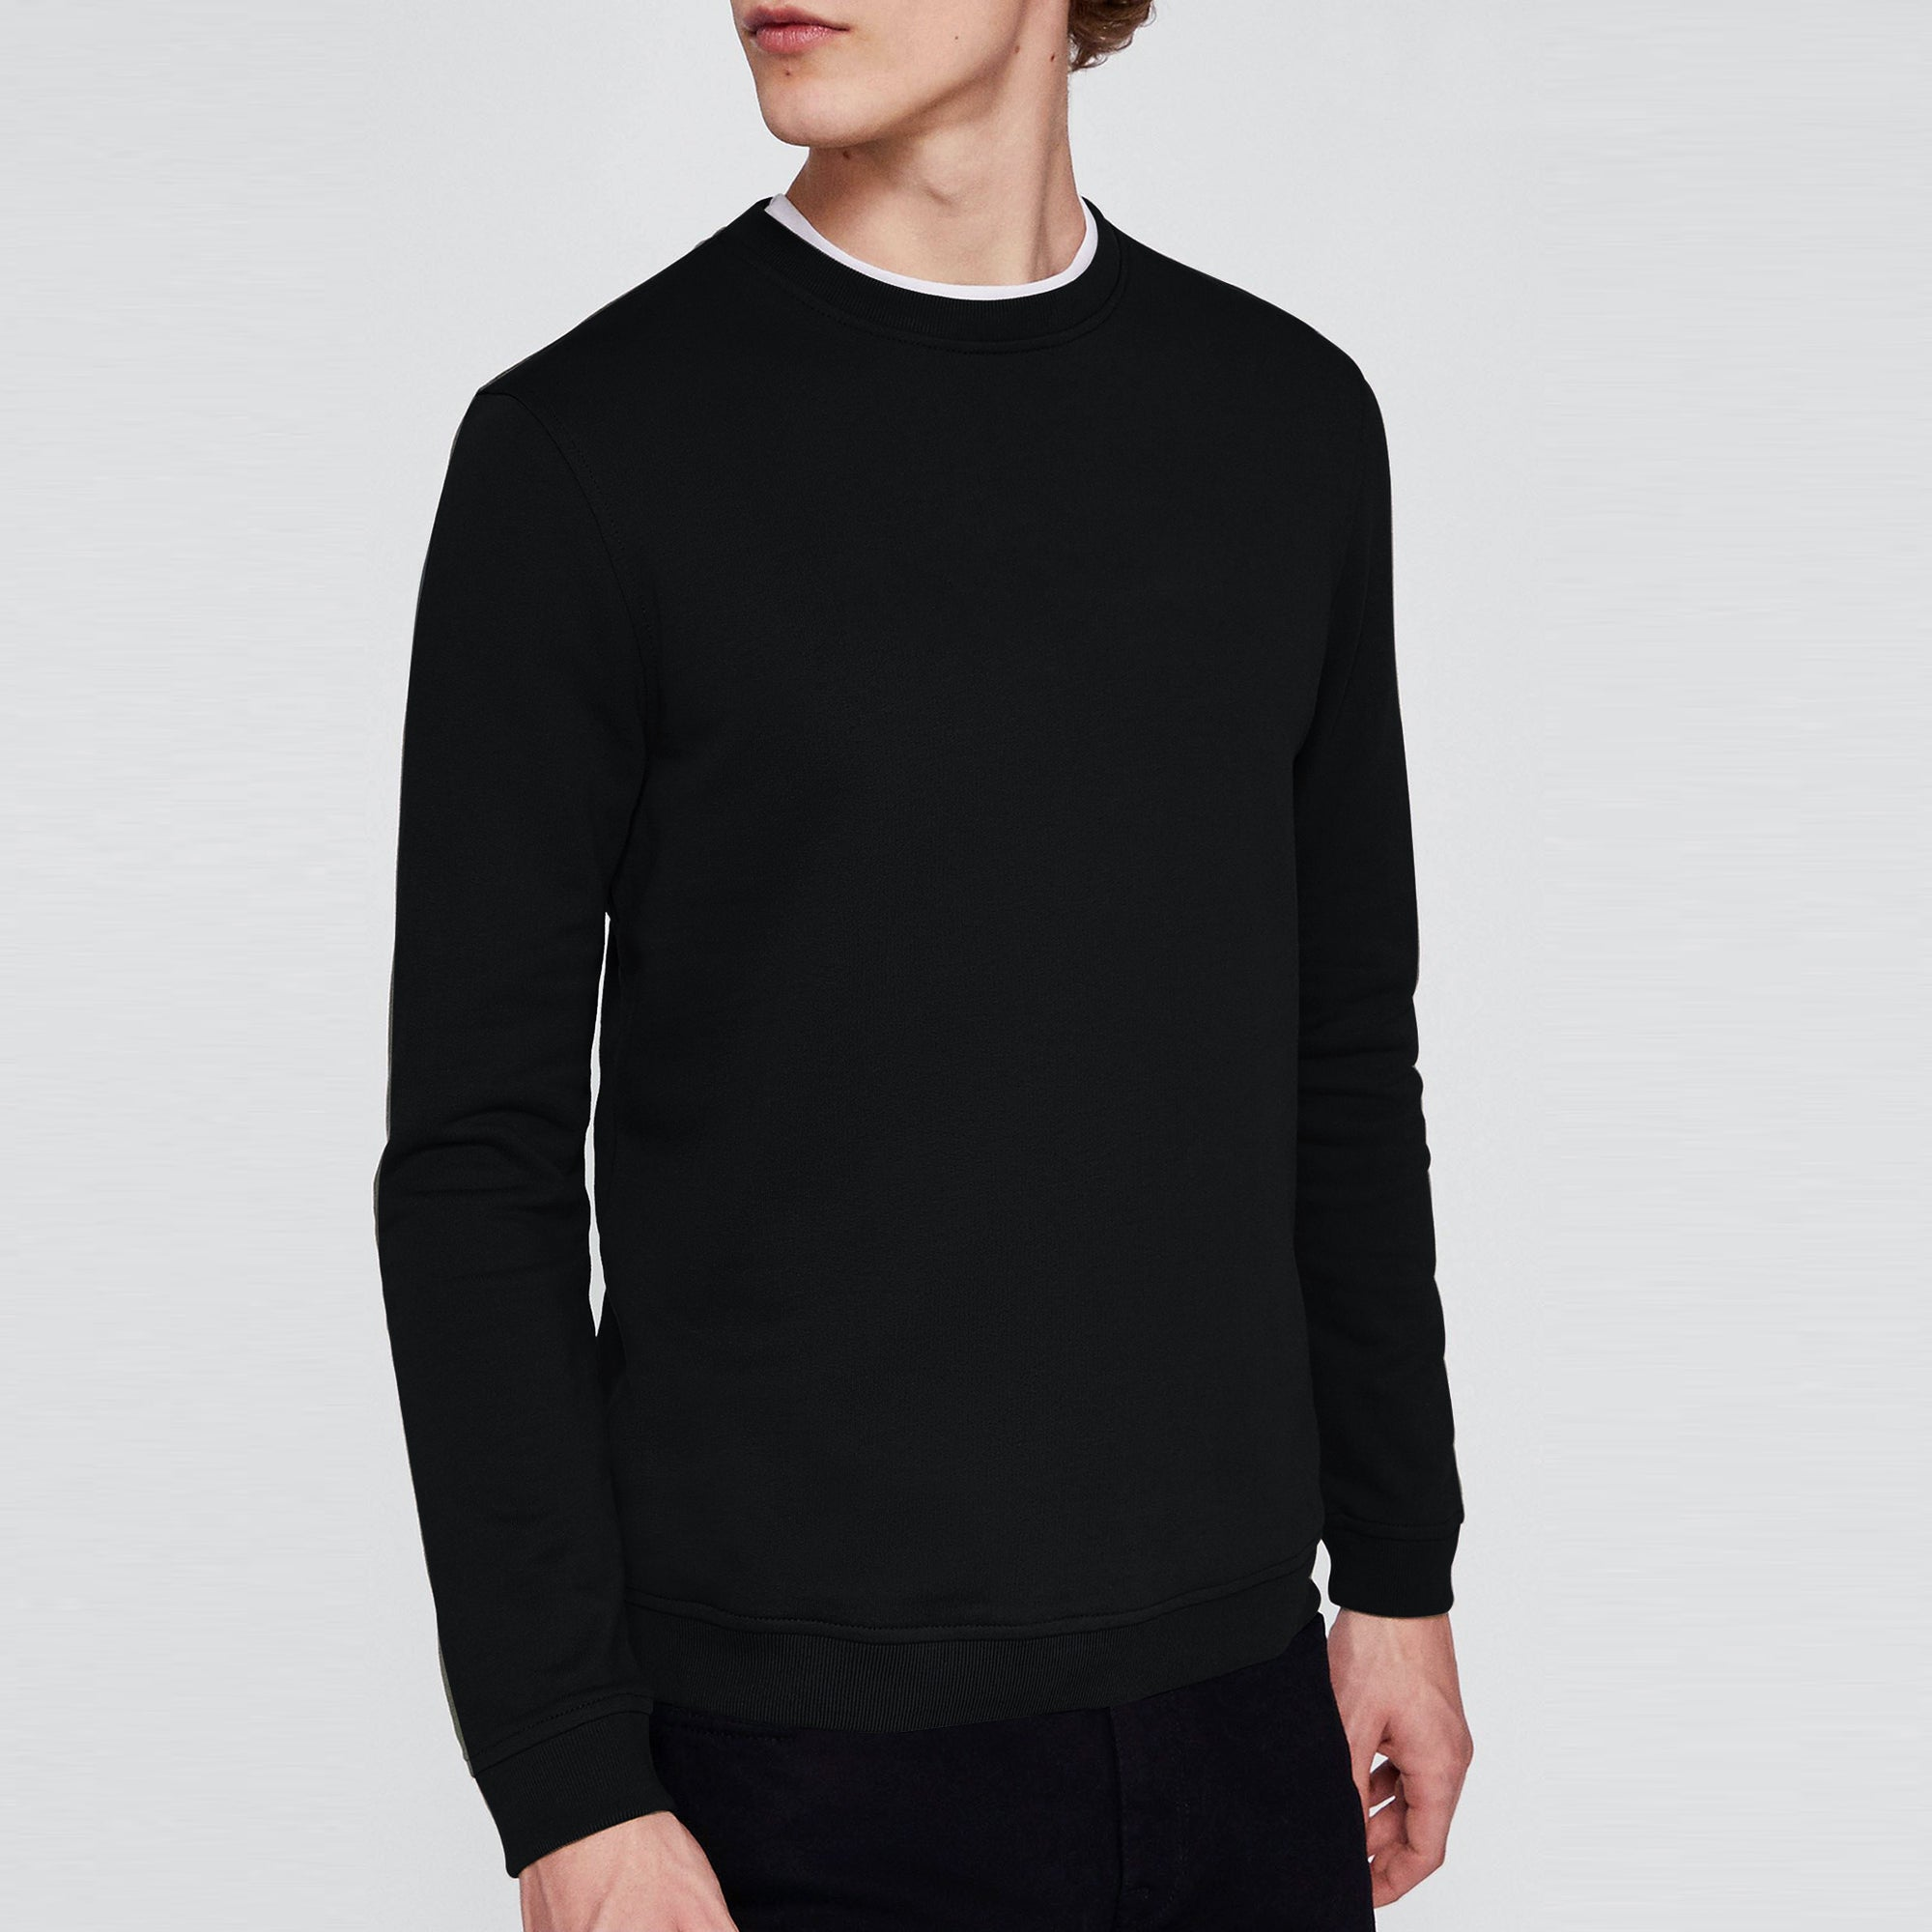 brandsego - Next Fleece Sweatshirt For Men-Black-BE6220